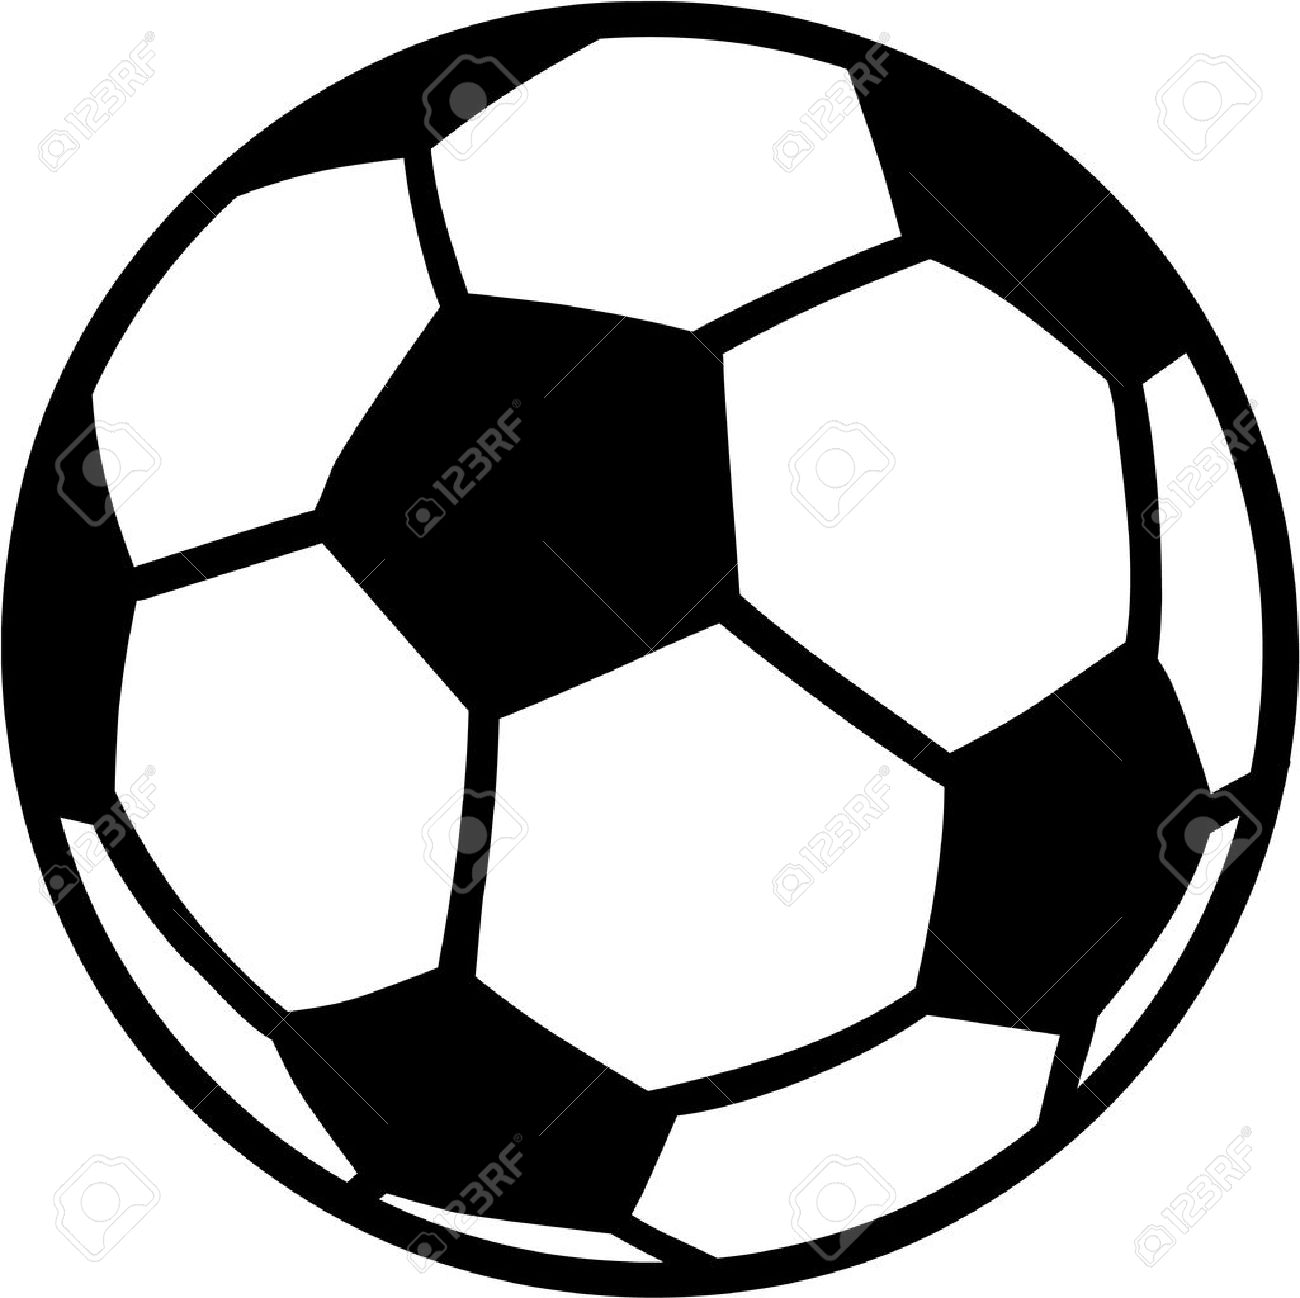 soccer ball royalty free cliparts vectors and stock illustration rh 123rf com soccer ball vector ai soccer ball vector png